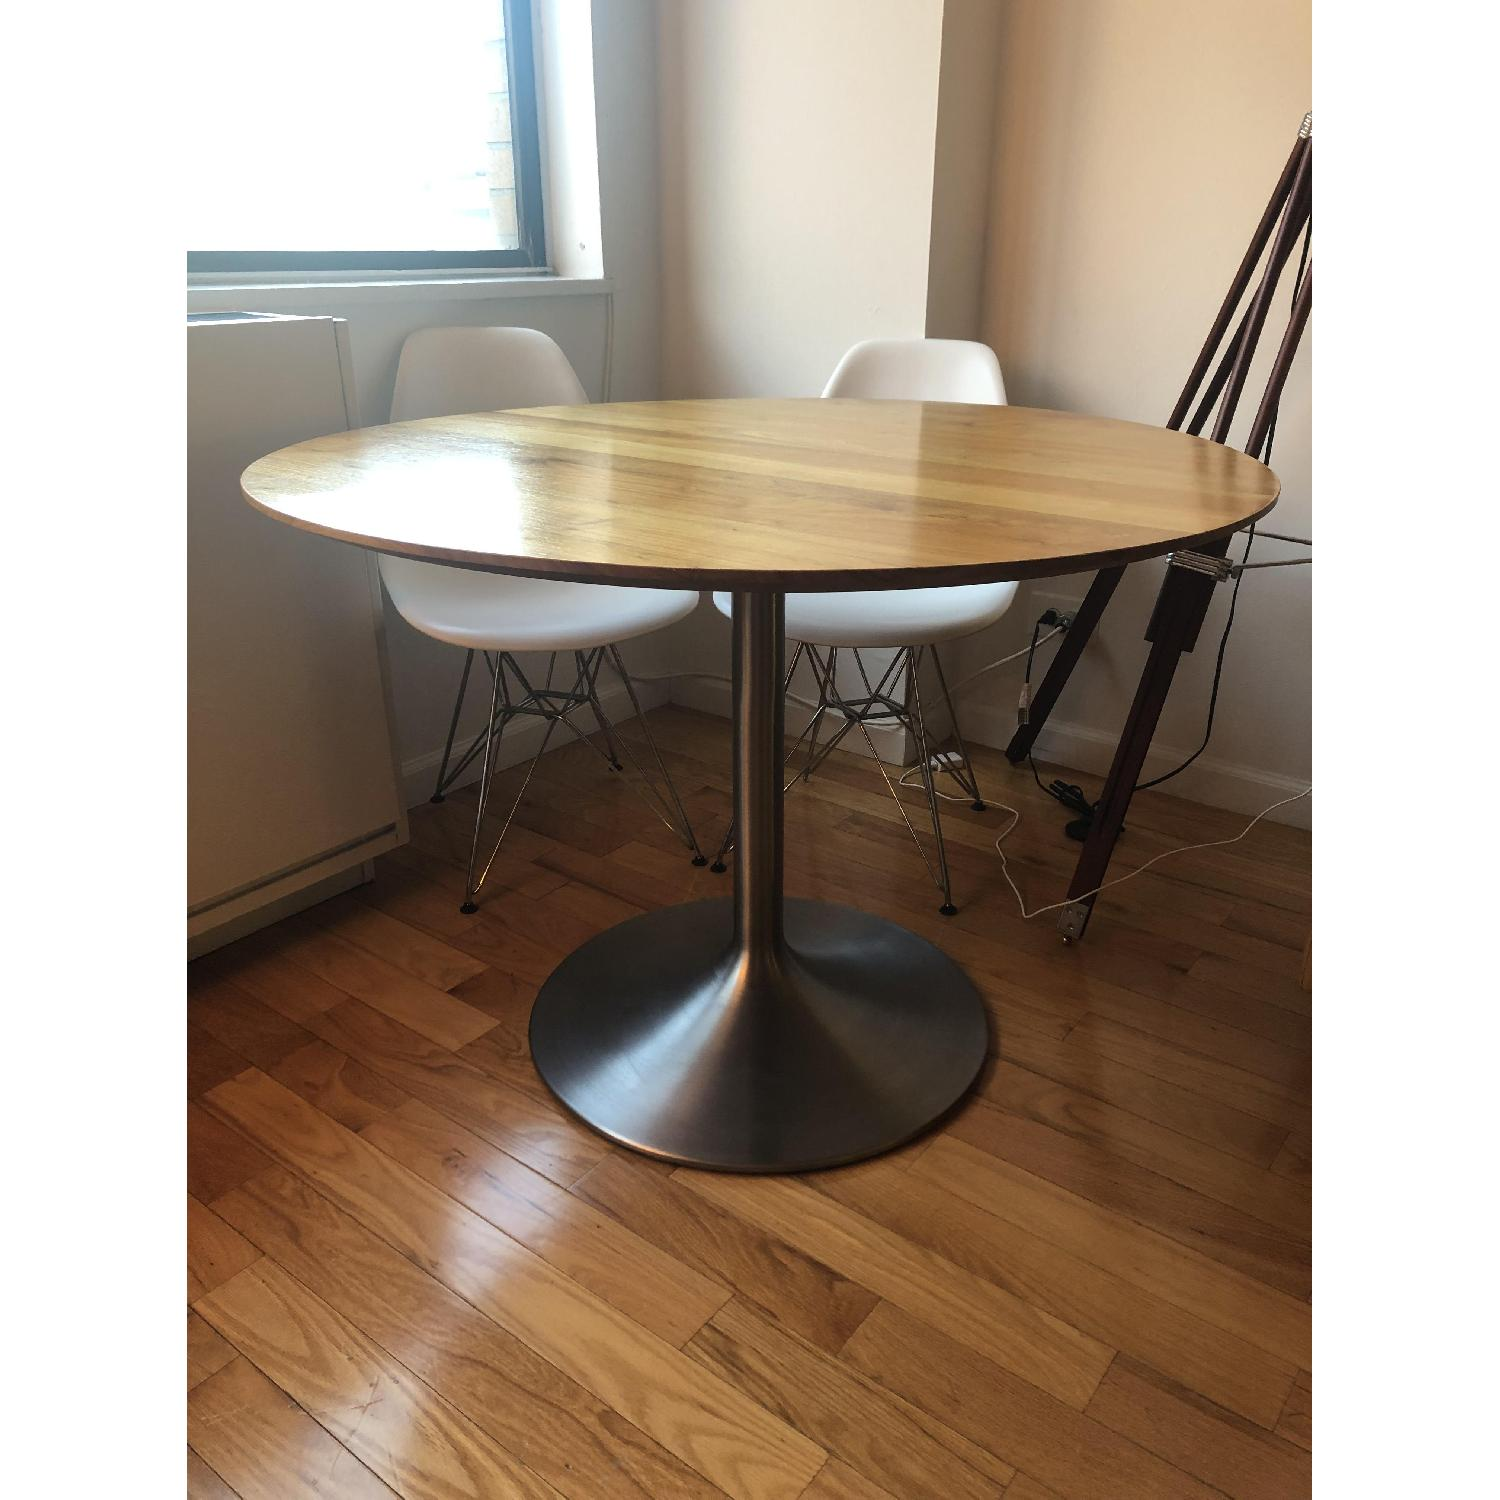 Room & Board Aria Round Dining Table-4